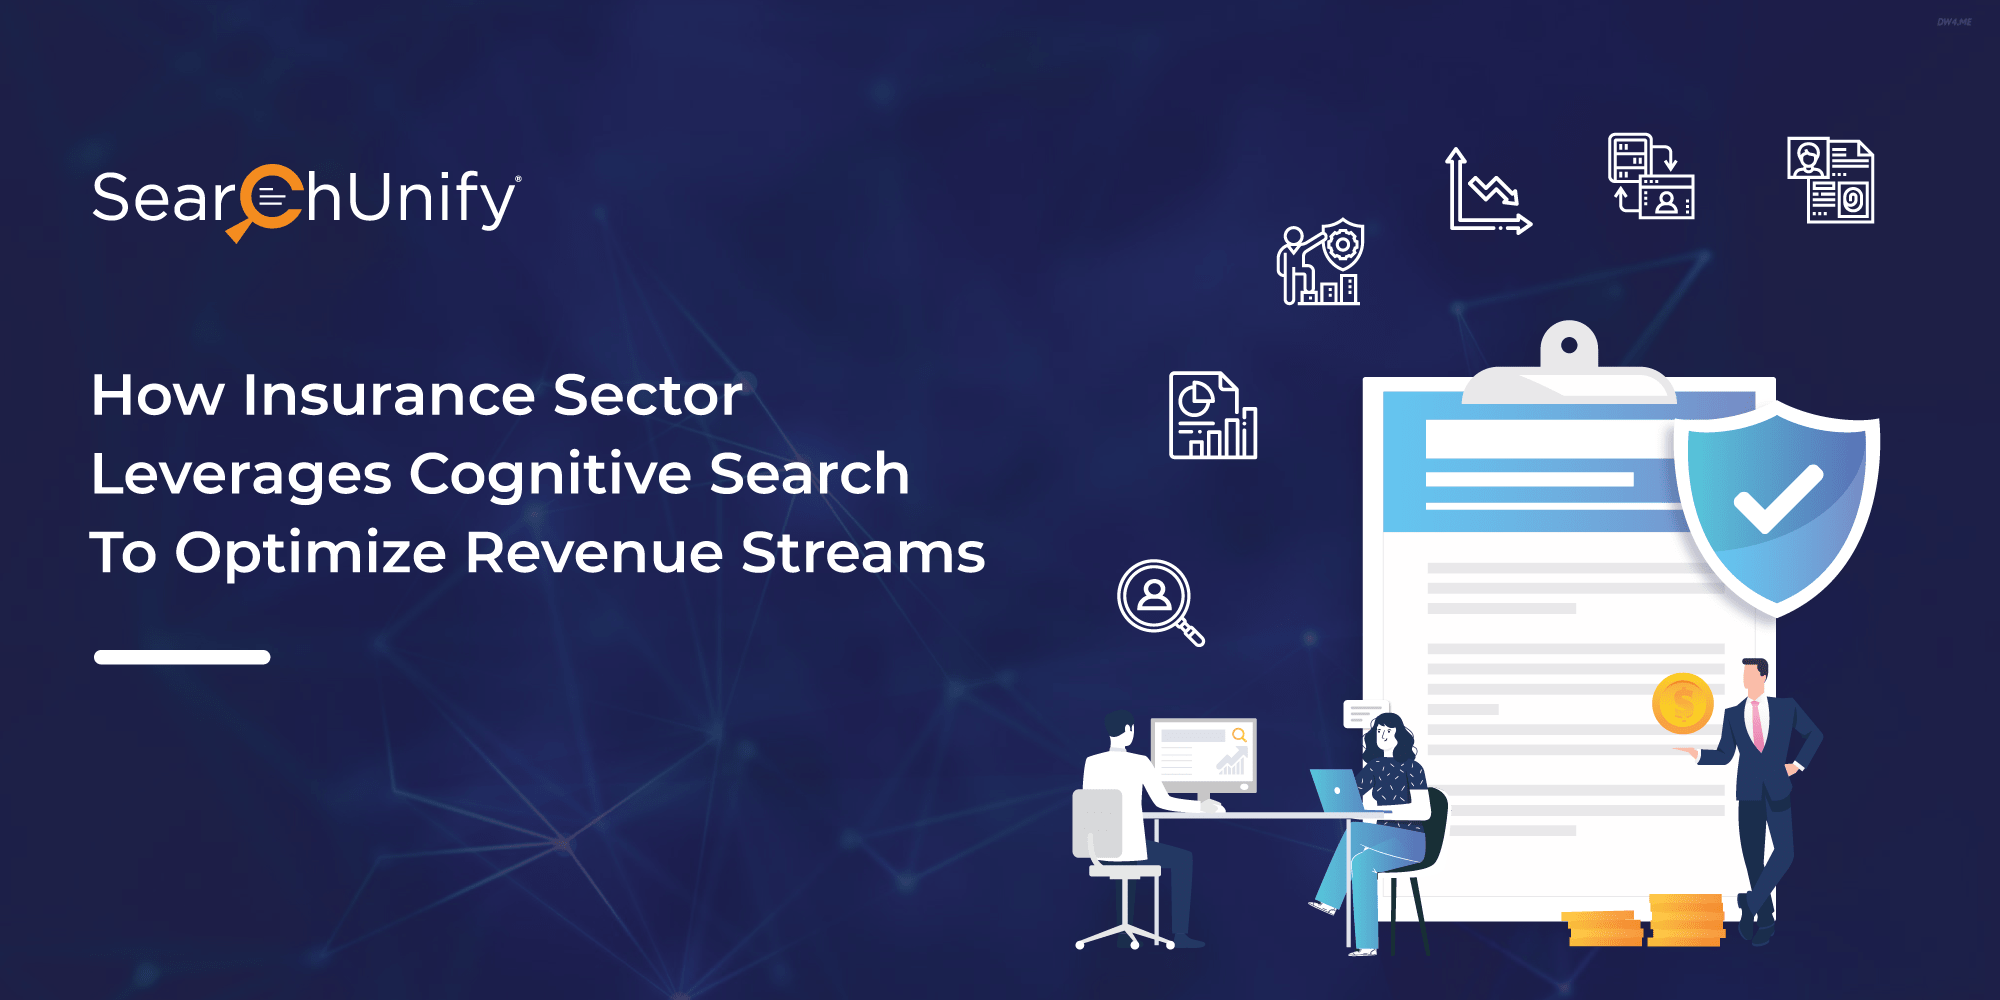 How Insurance Sector Leverages Cognitive Search to Optimize Revenue Streams